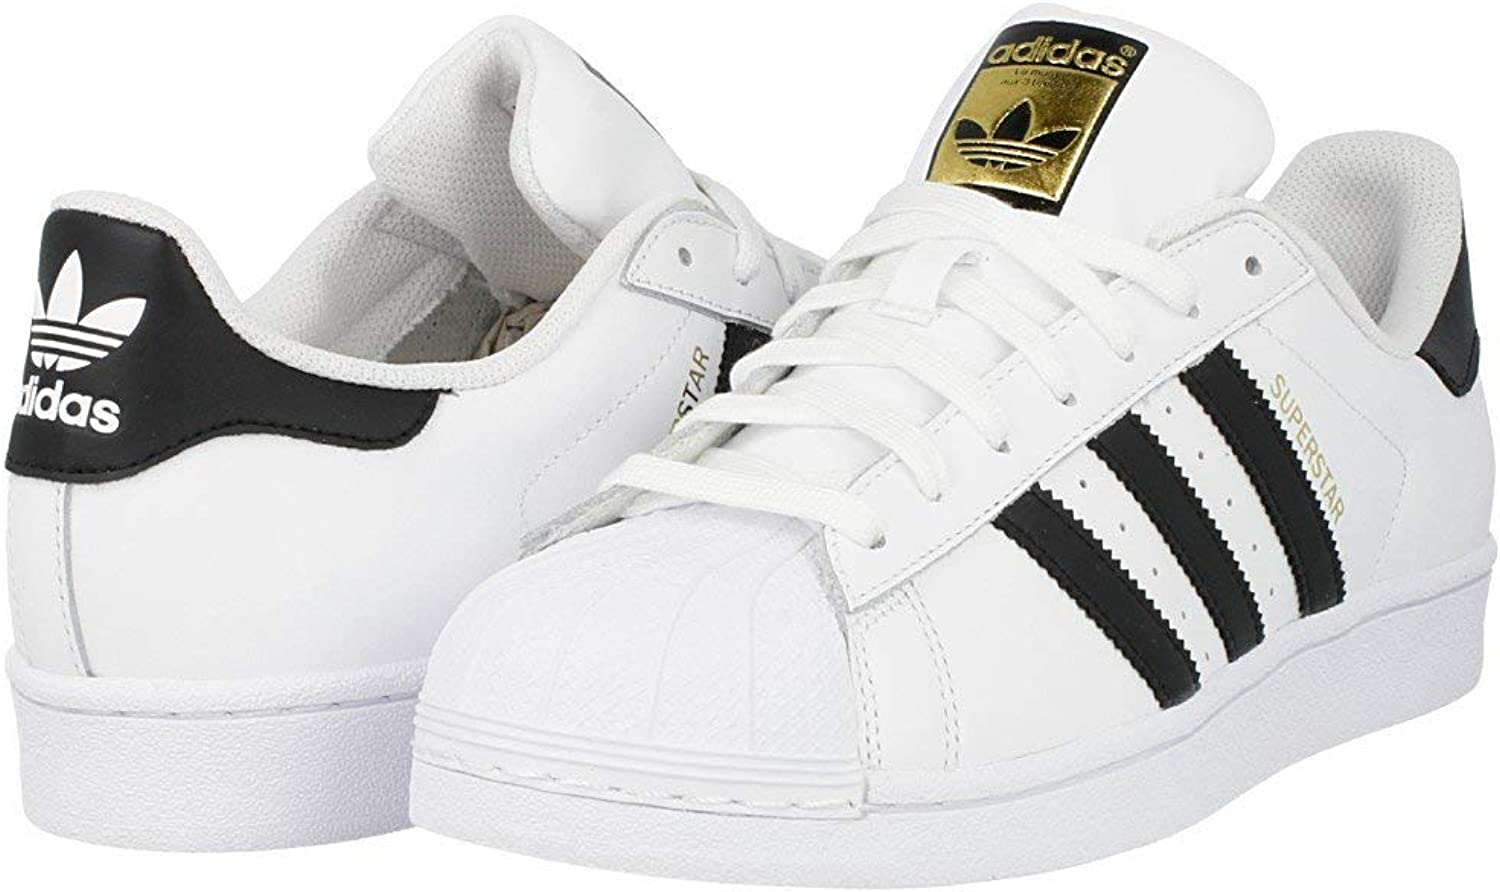 Adidas Originals Men's Superstar Basketball Sneaker, White Black White, 3.5 M US